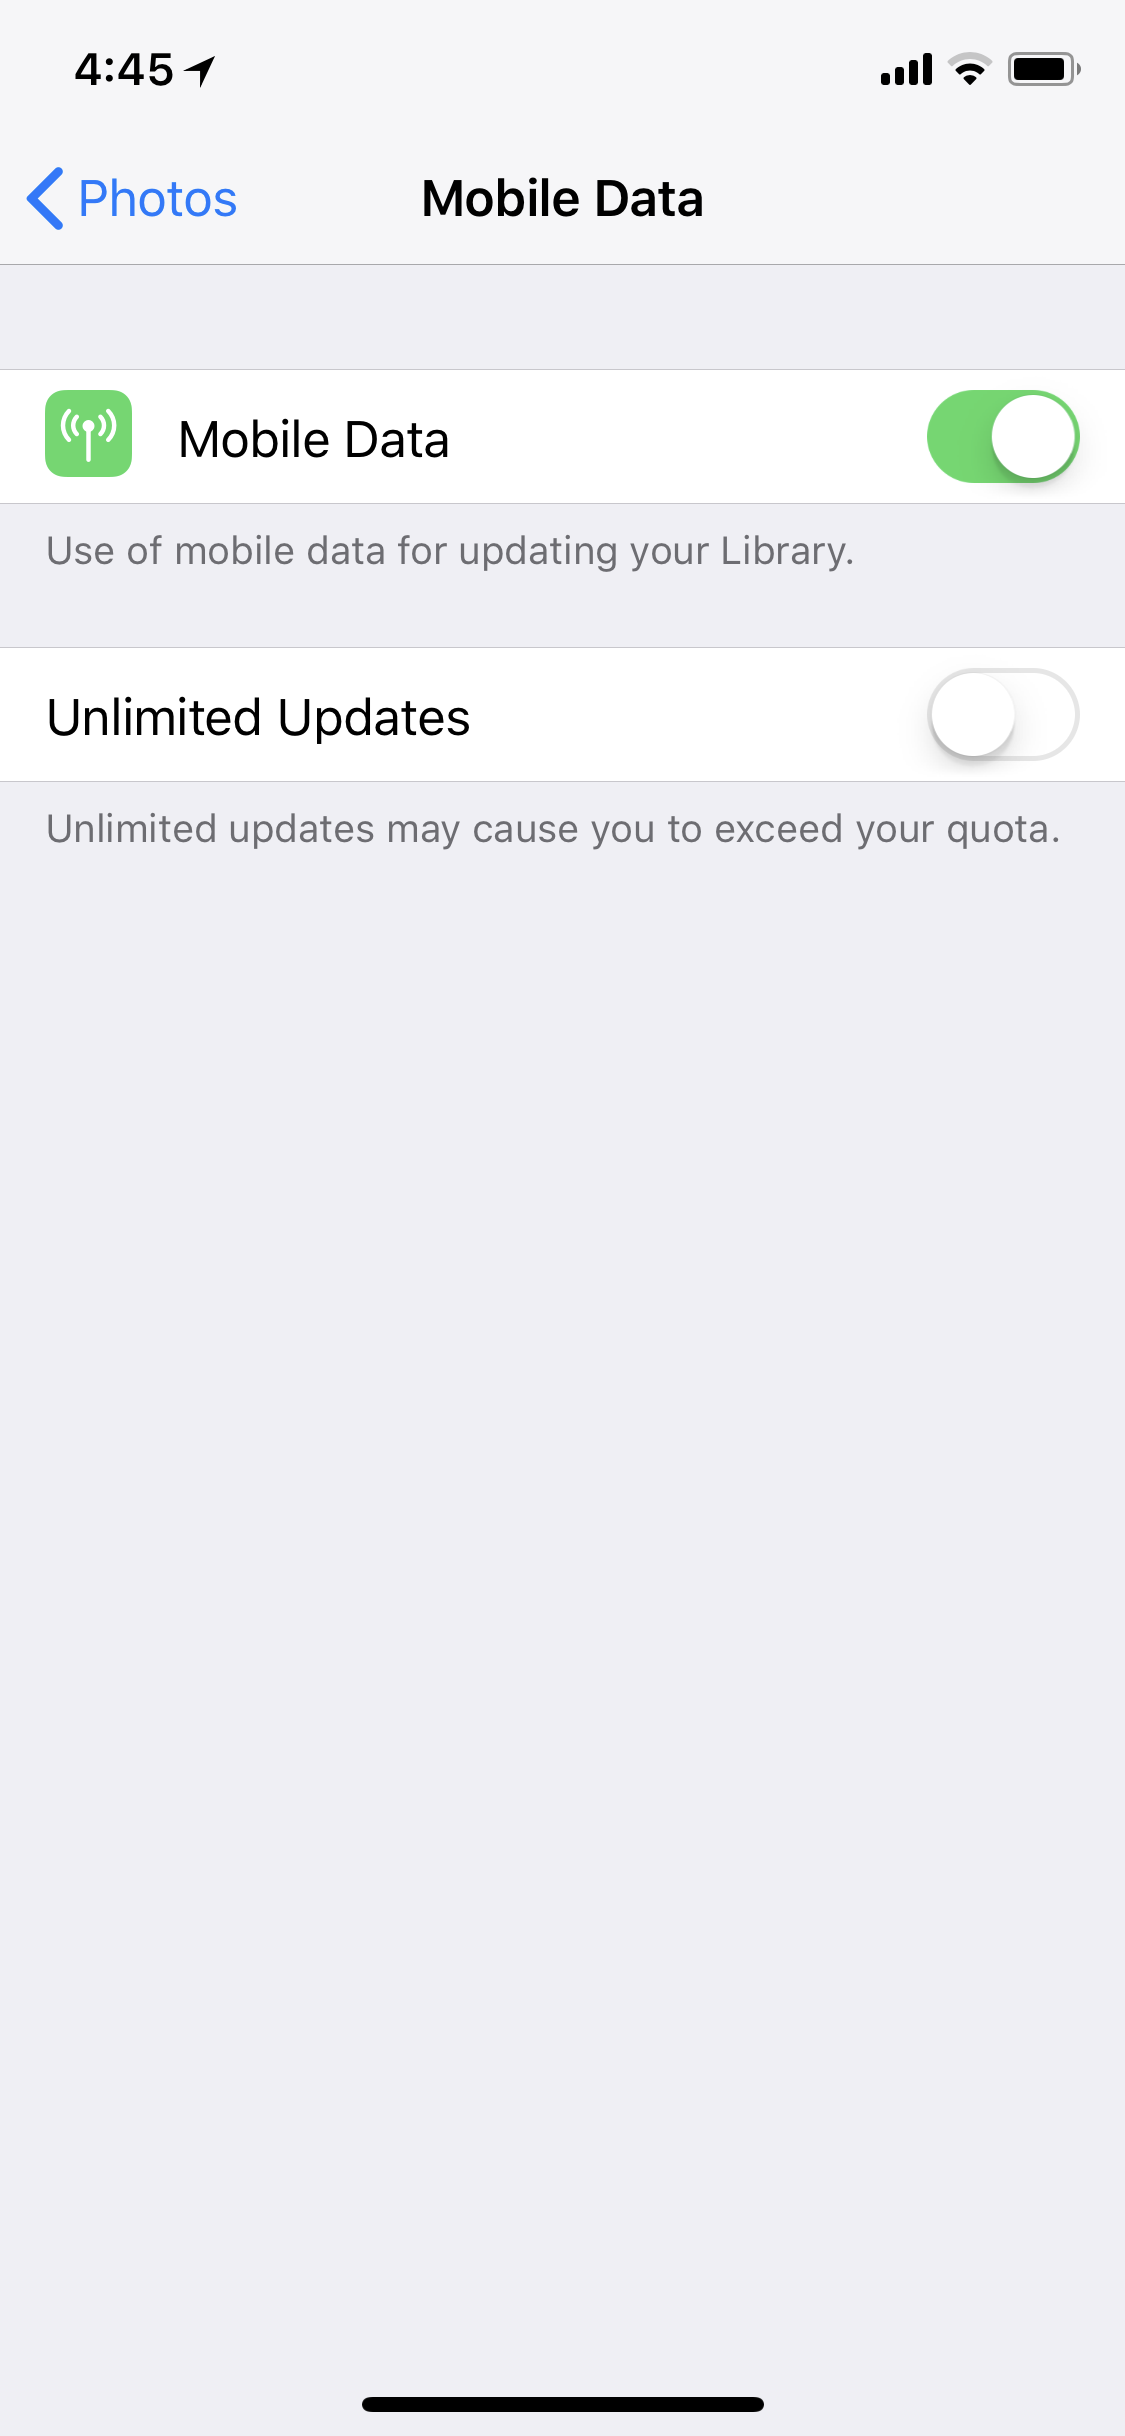 Wondering what not-unlimited updates means.